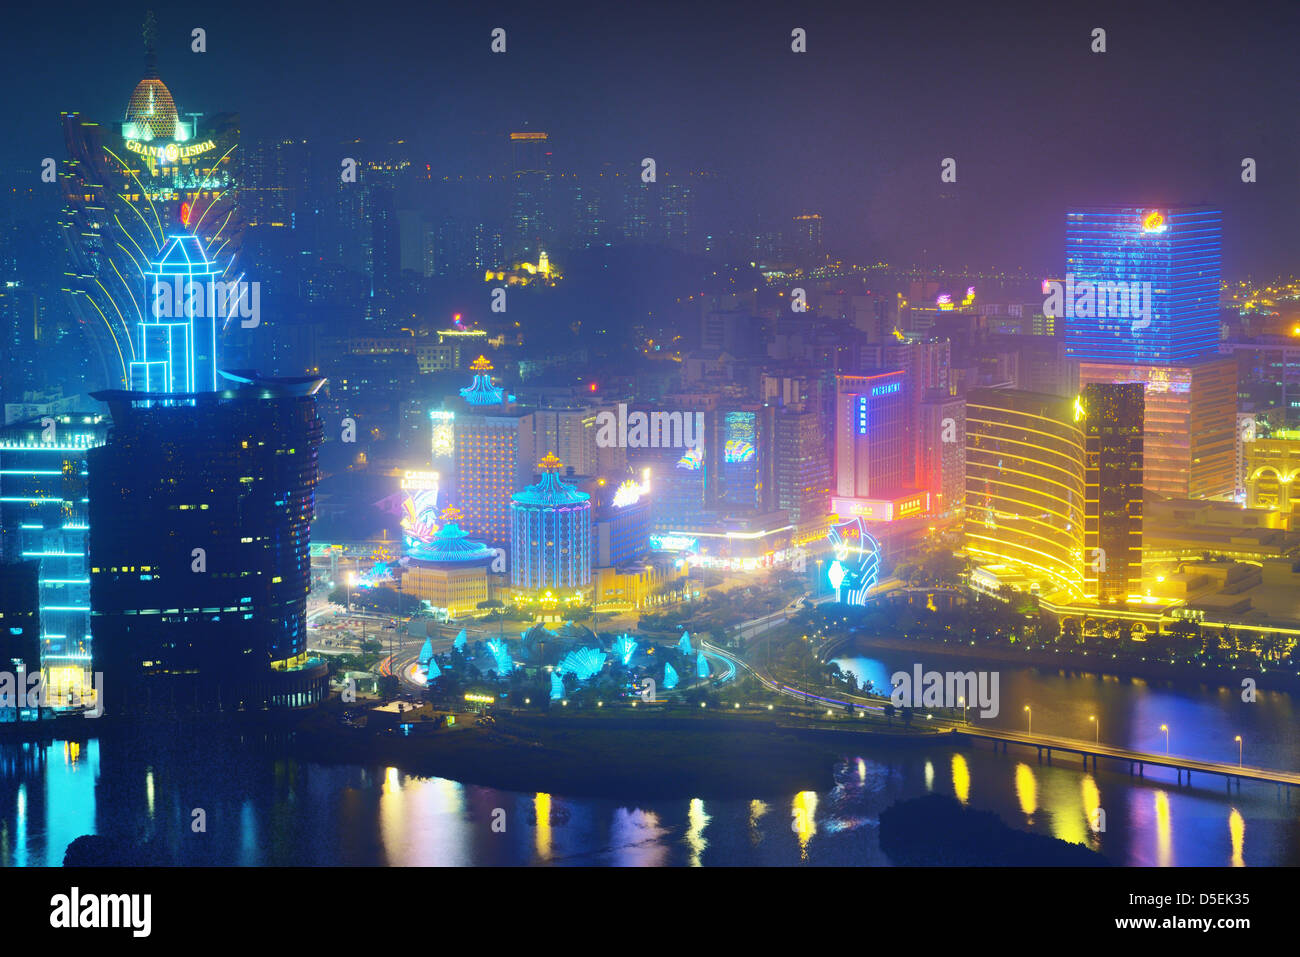 Resort casinos de Macao, China. Imagen De Stock